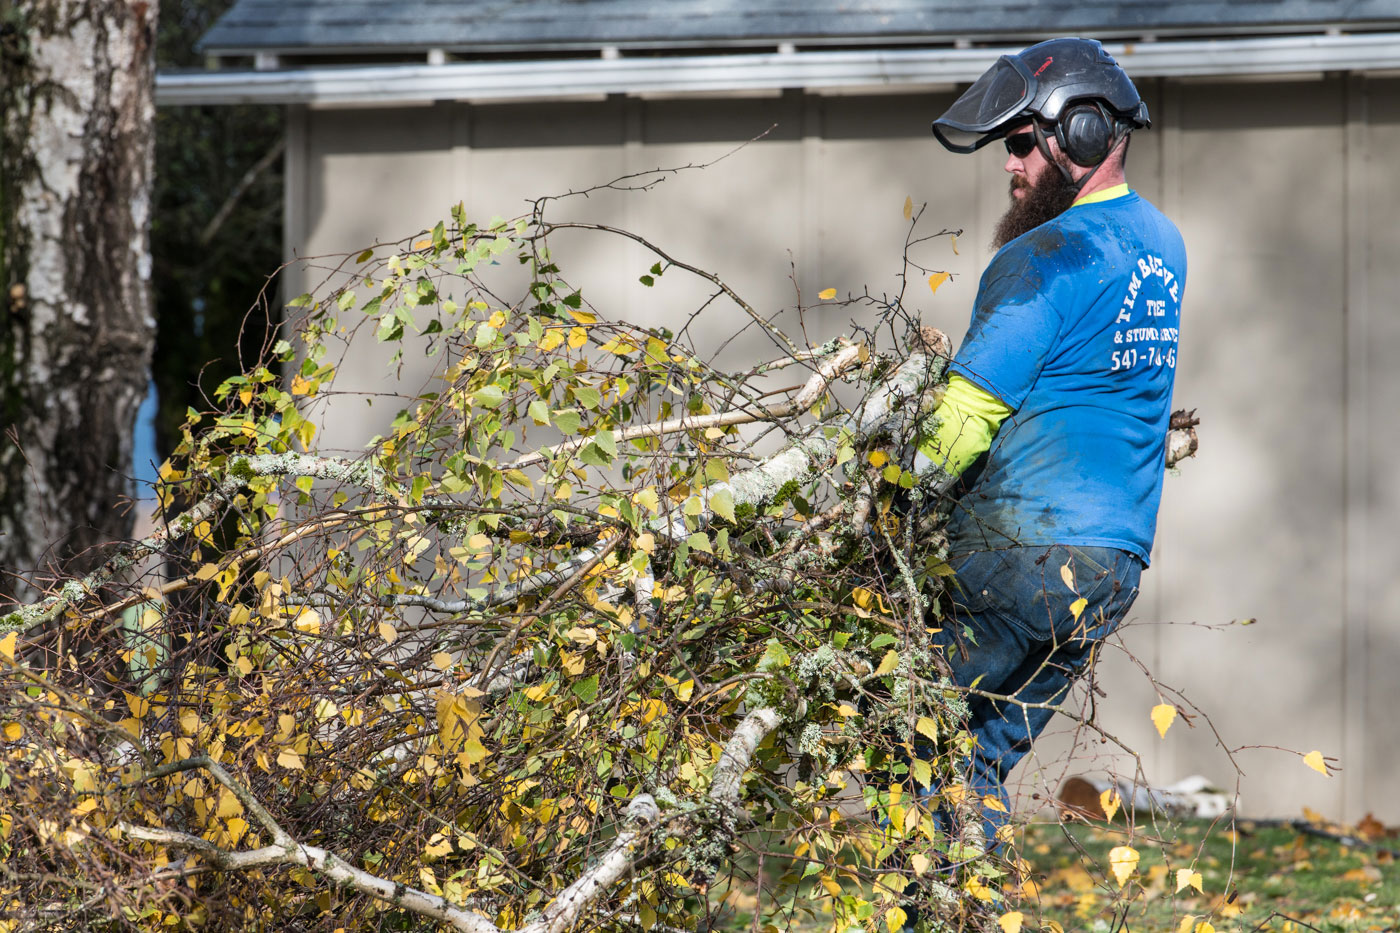 Tim Brewer Tree & Stump Service employee Derick Swain takes tree limbs to the chipper in Corvallis, Oregon.